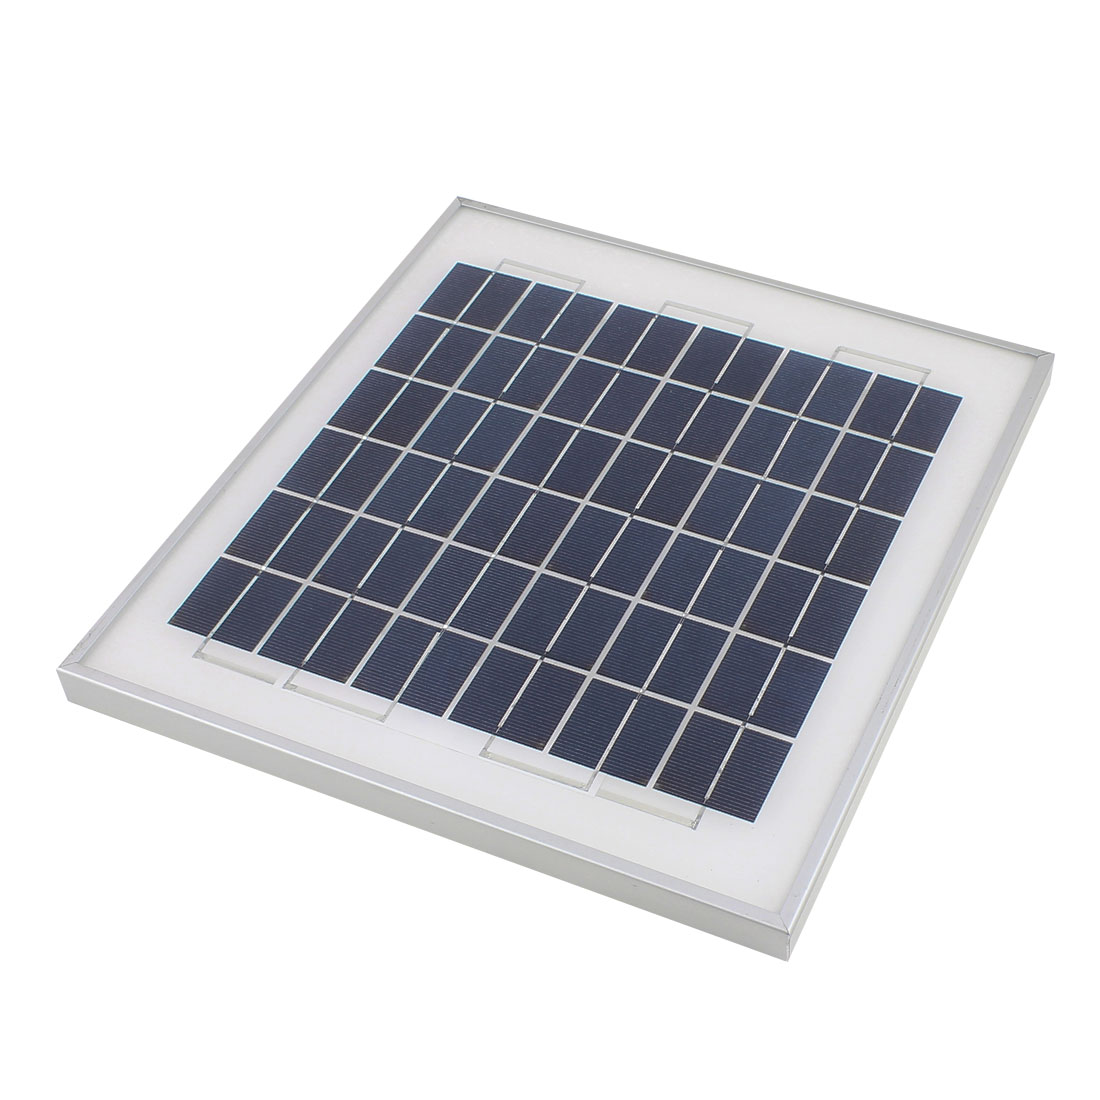 18V 10W DIY Polycrystallinesilicon Solar Panel Power Cell Battery Charger 330mm x 300mm x 20mm